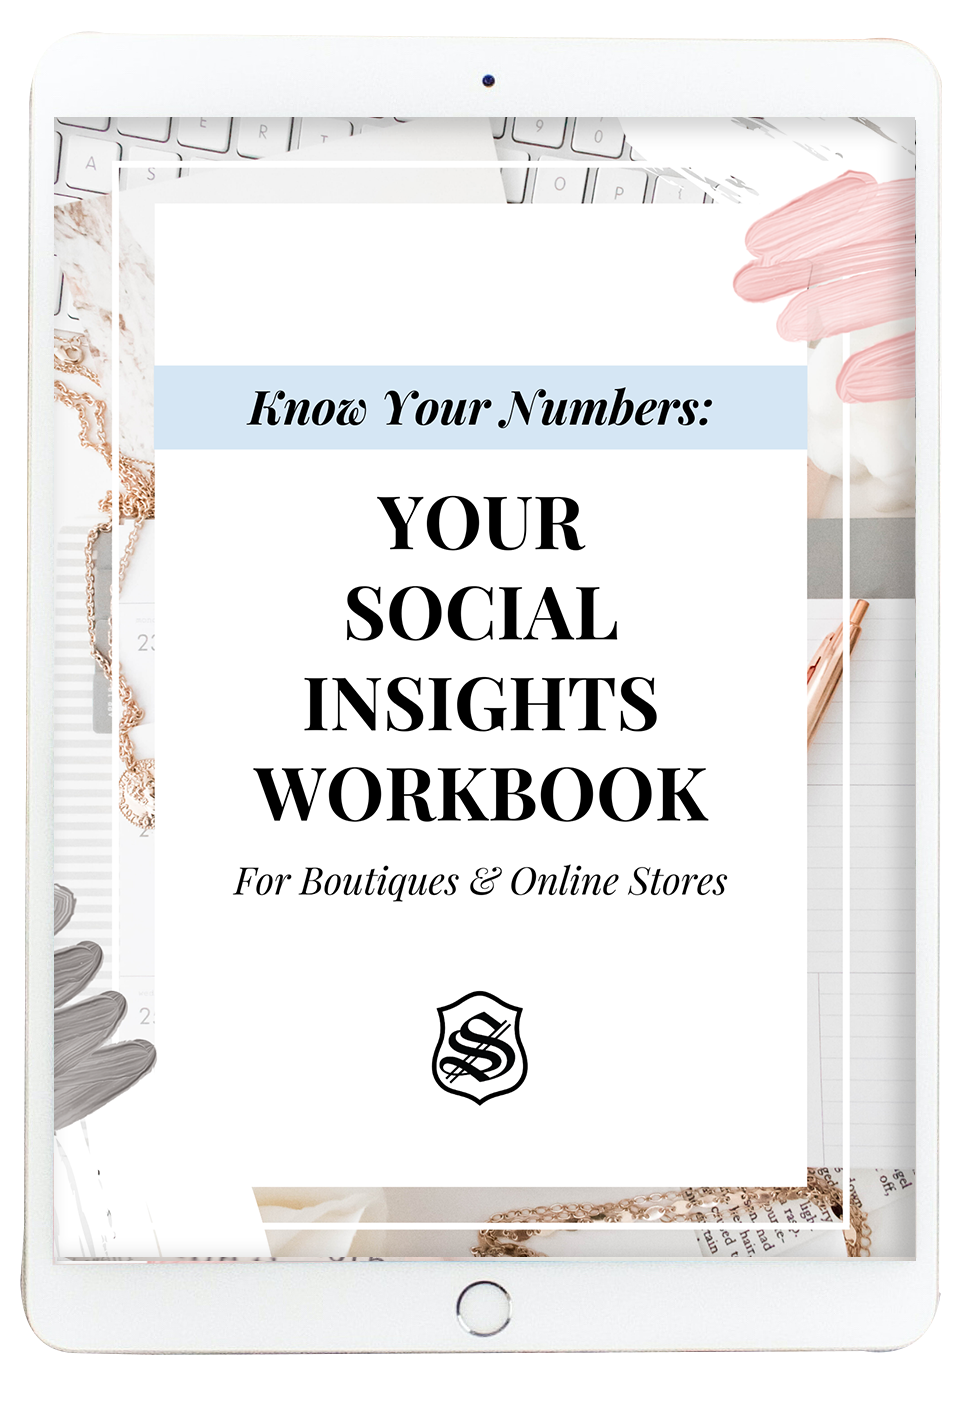 Know Your Numbers - Social Insights Workbook